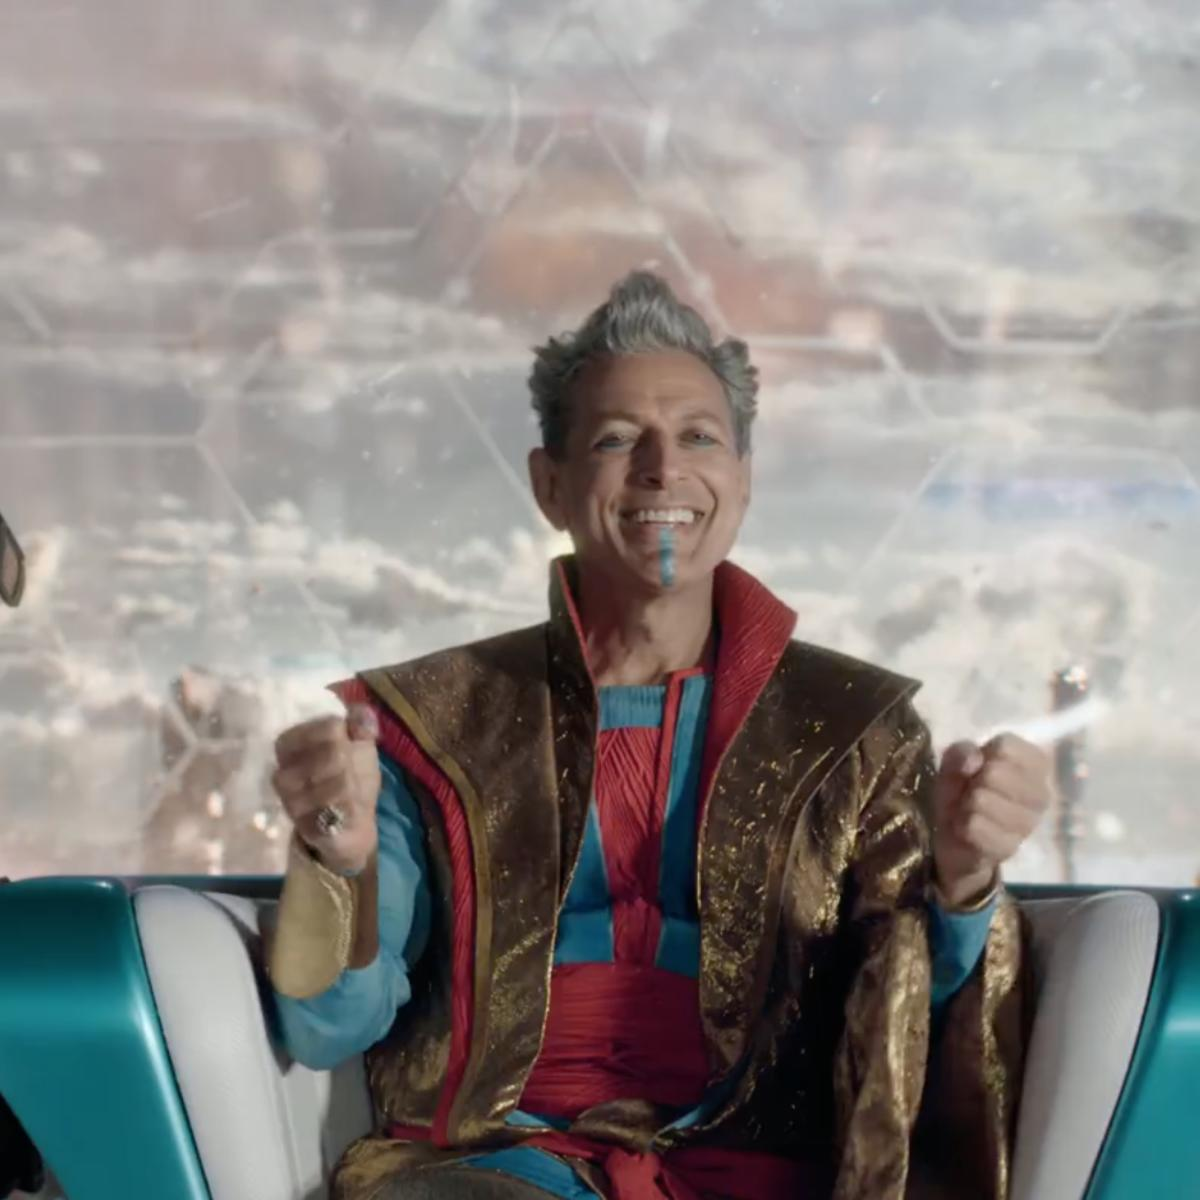 Jeff Goldblum as the Grandmaster in Thor: Ragnarok